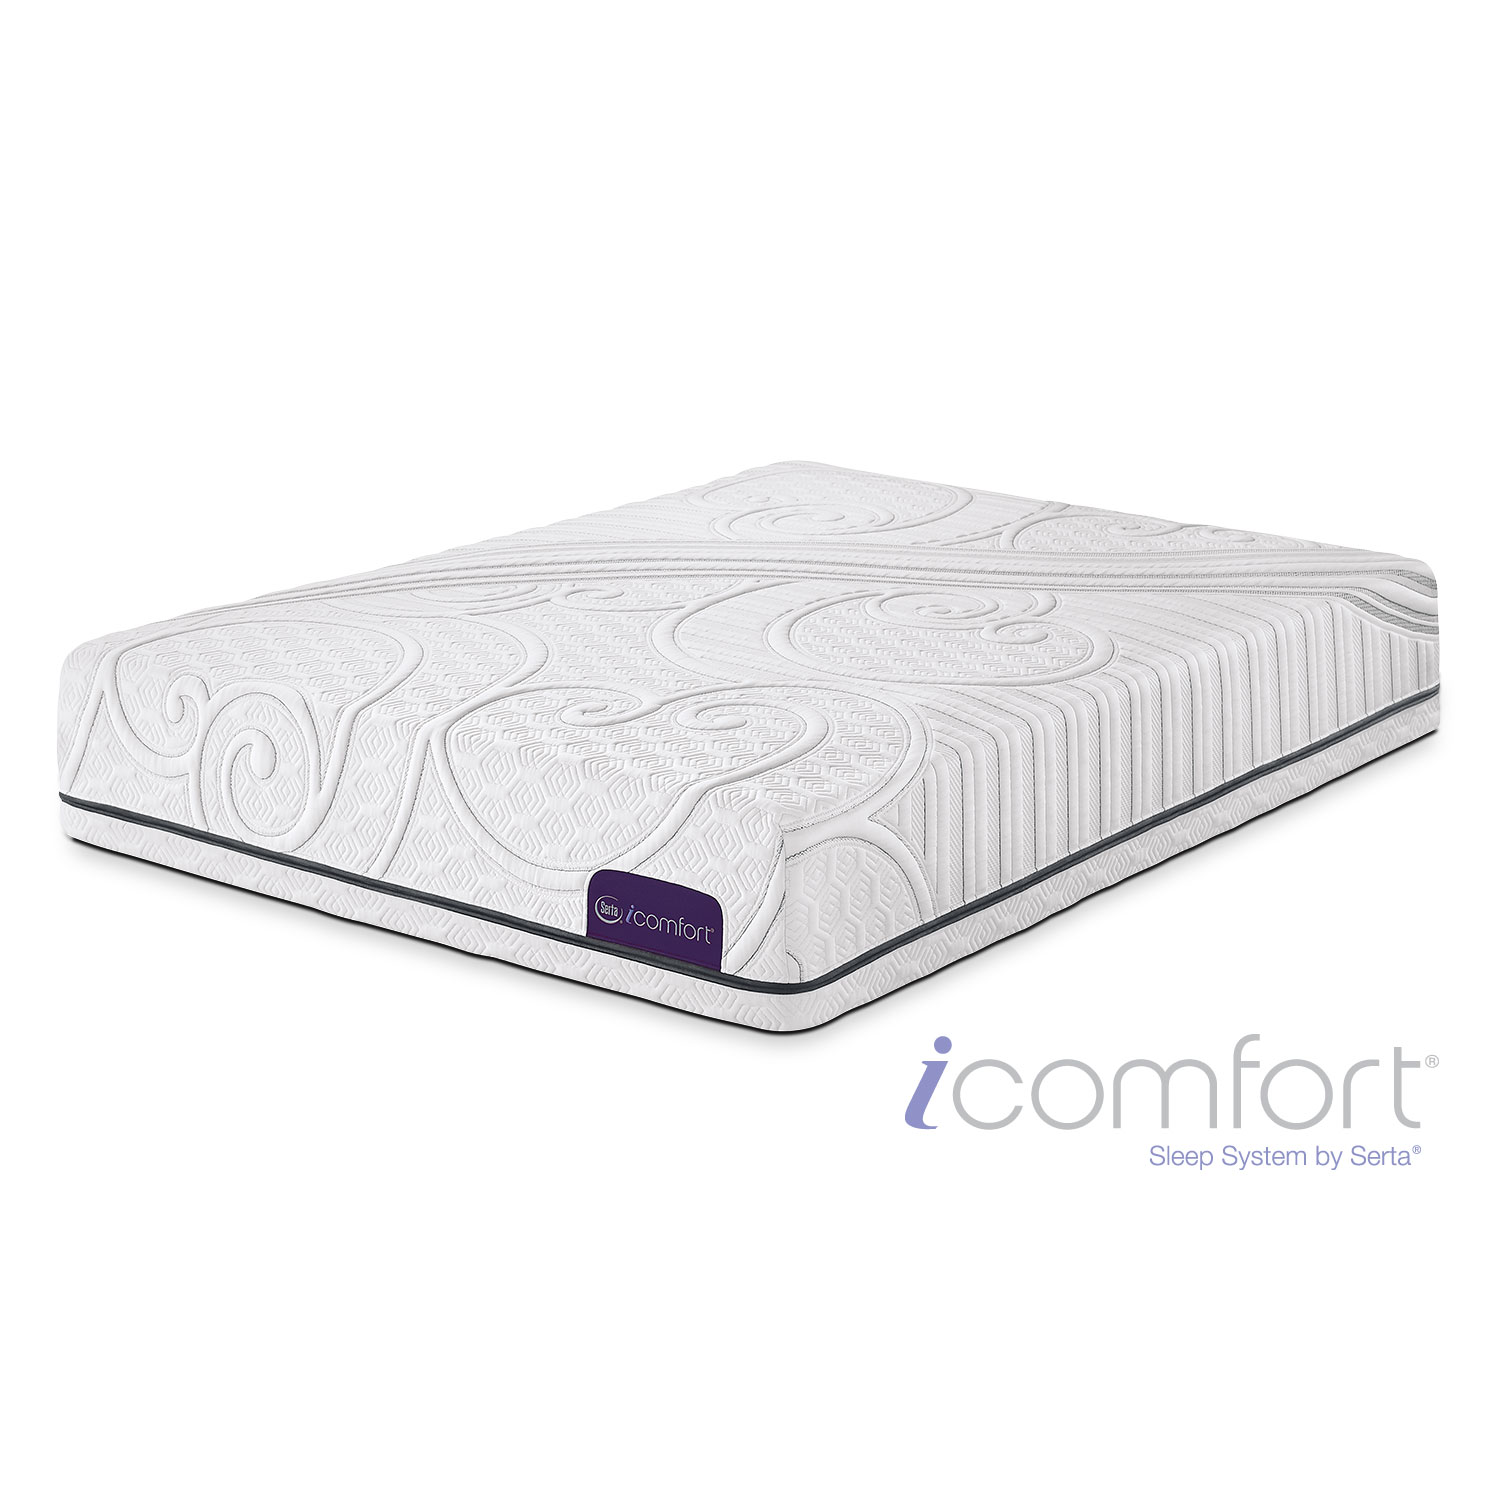 Mattresses and Bedding - Guidance Firm California King Mattress